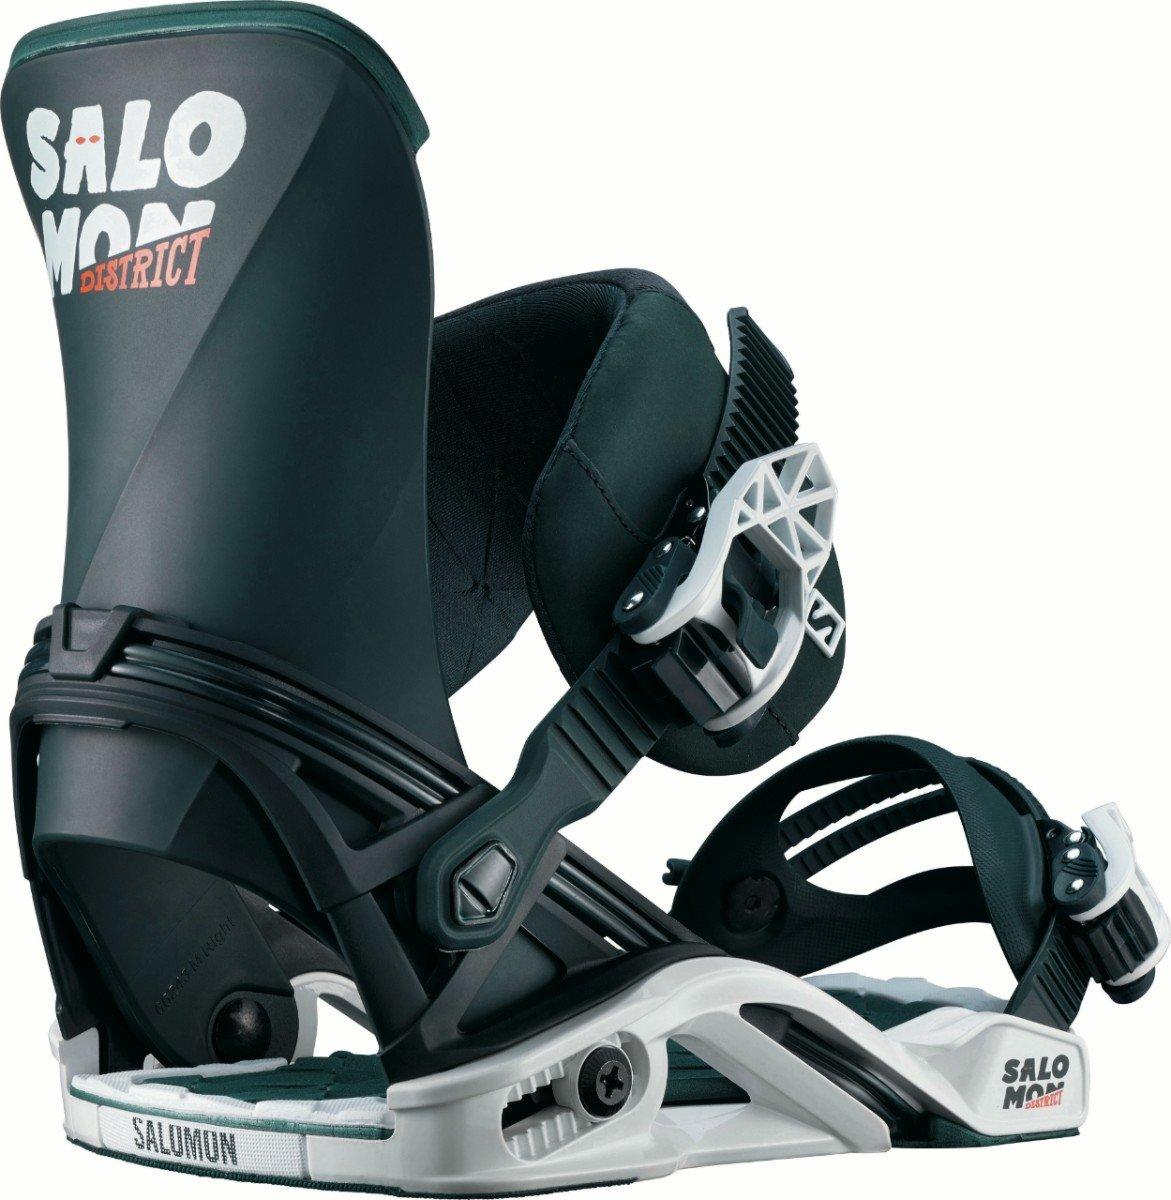 Salomon District Snowboard Bindings 2018